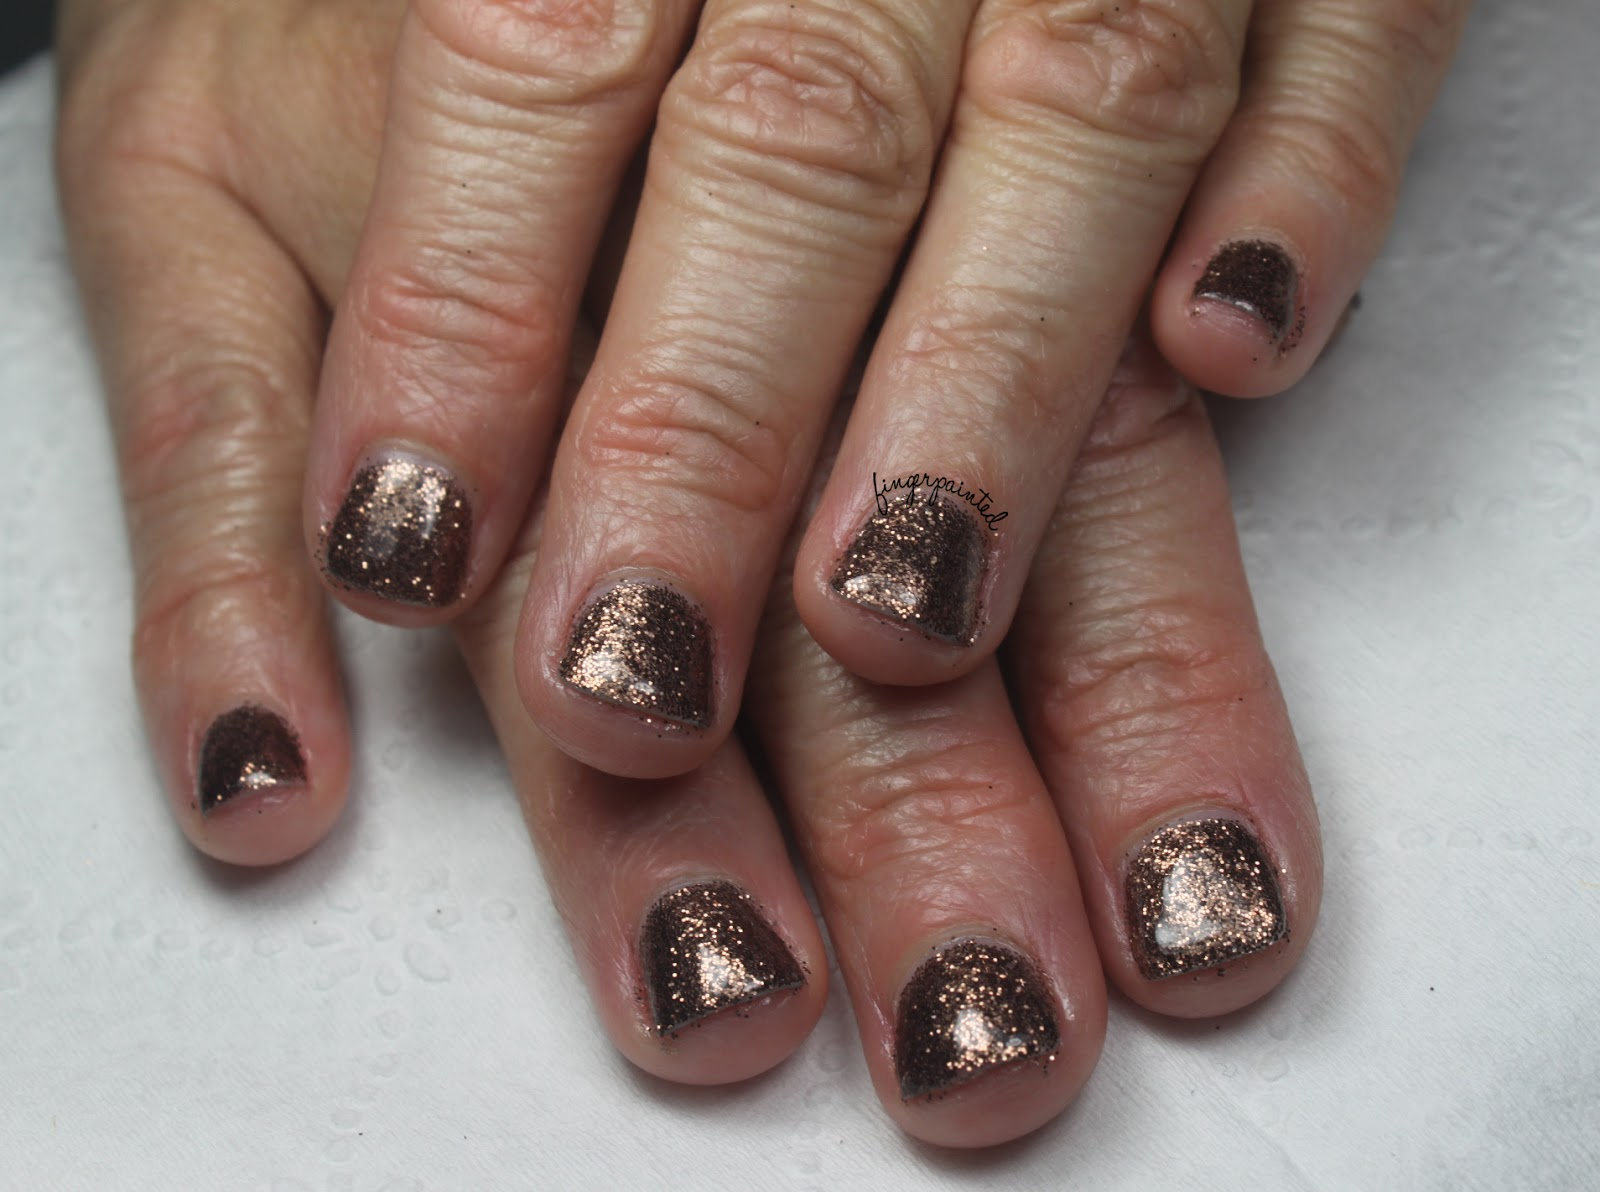 Gelish Manicure Star Burst With Black Shadow Tips Work - InspiriToo.